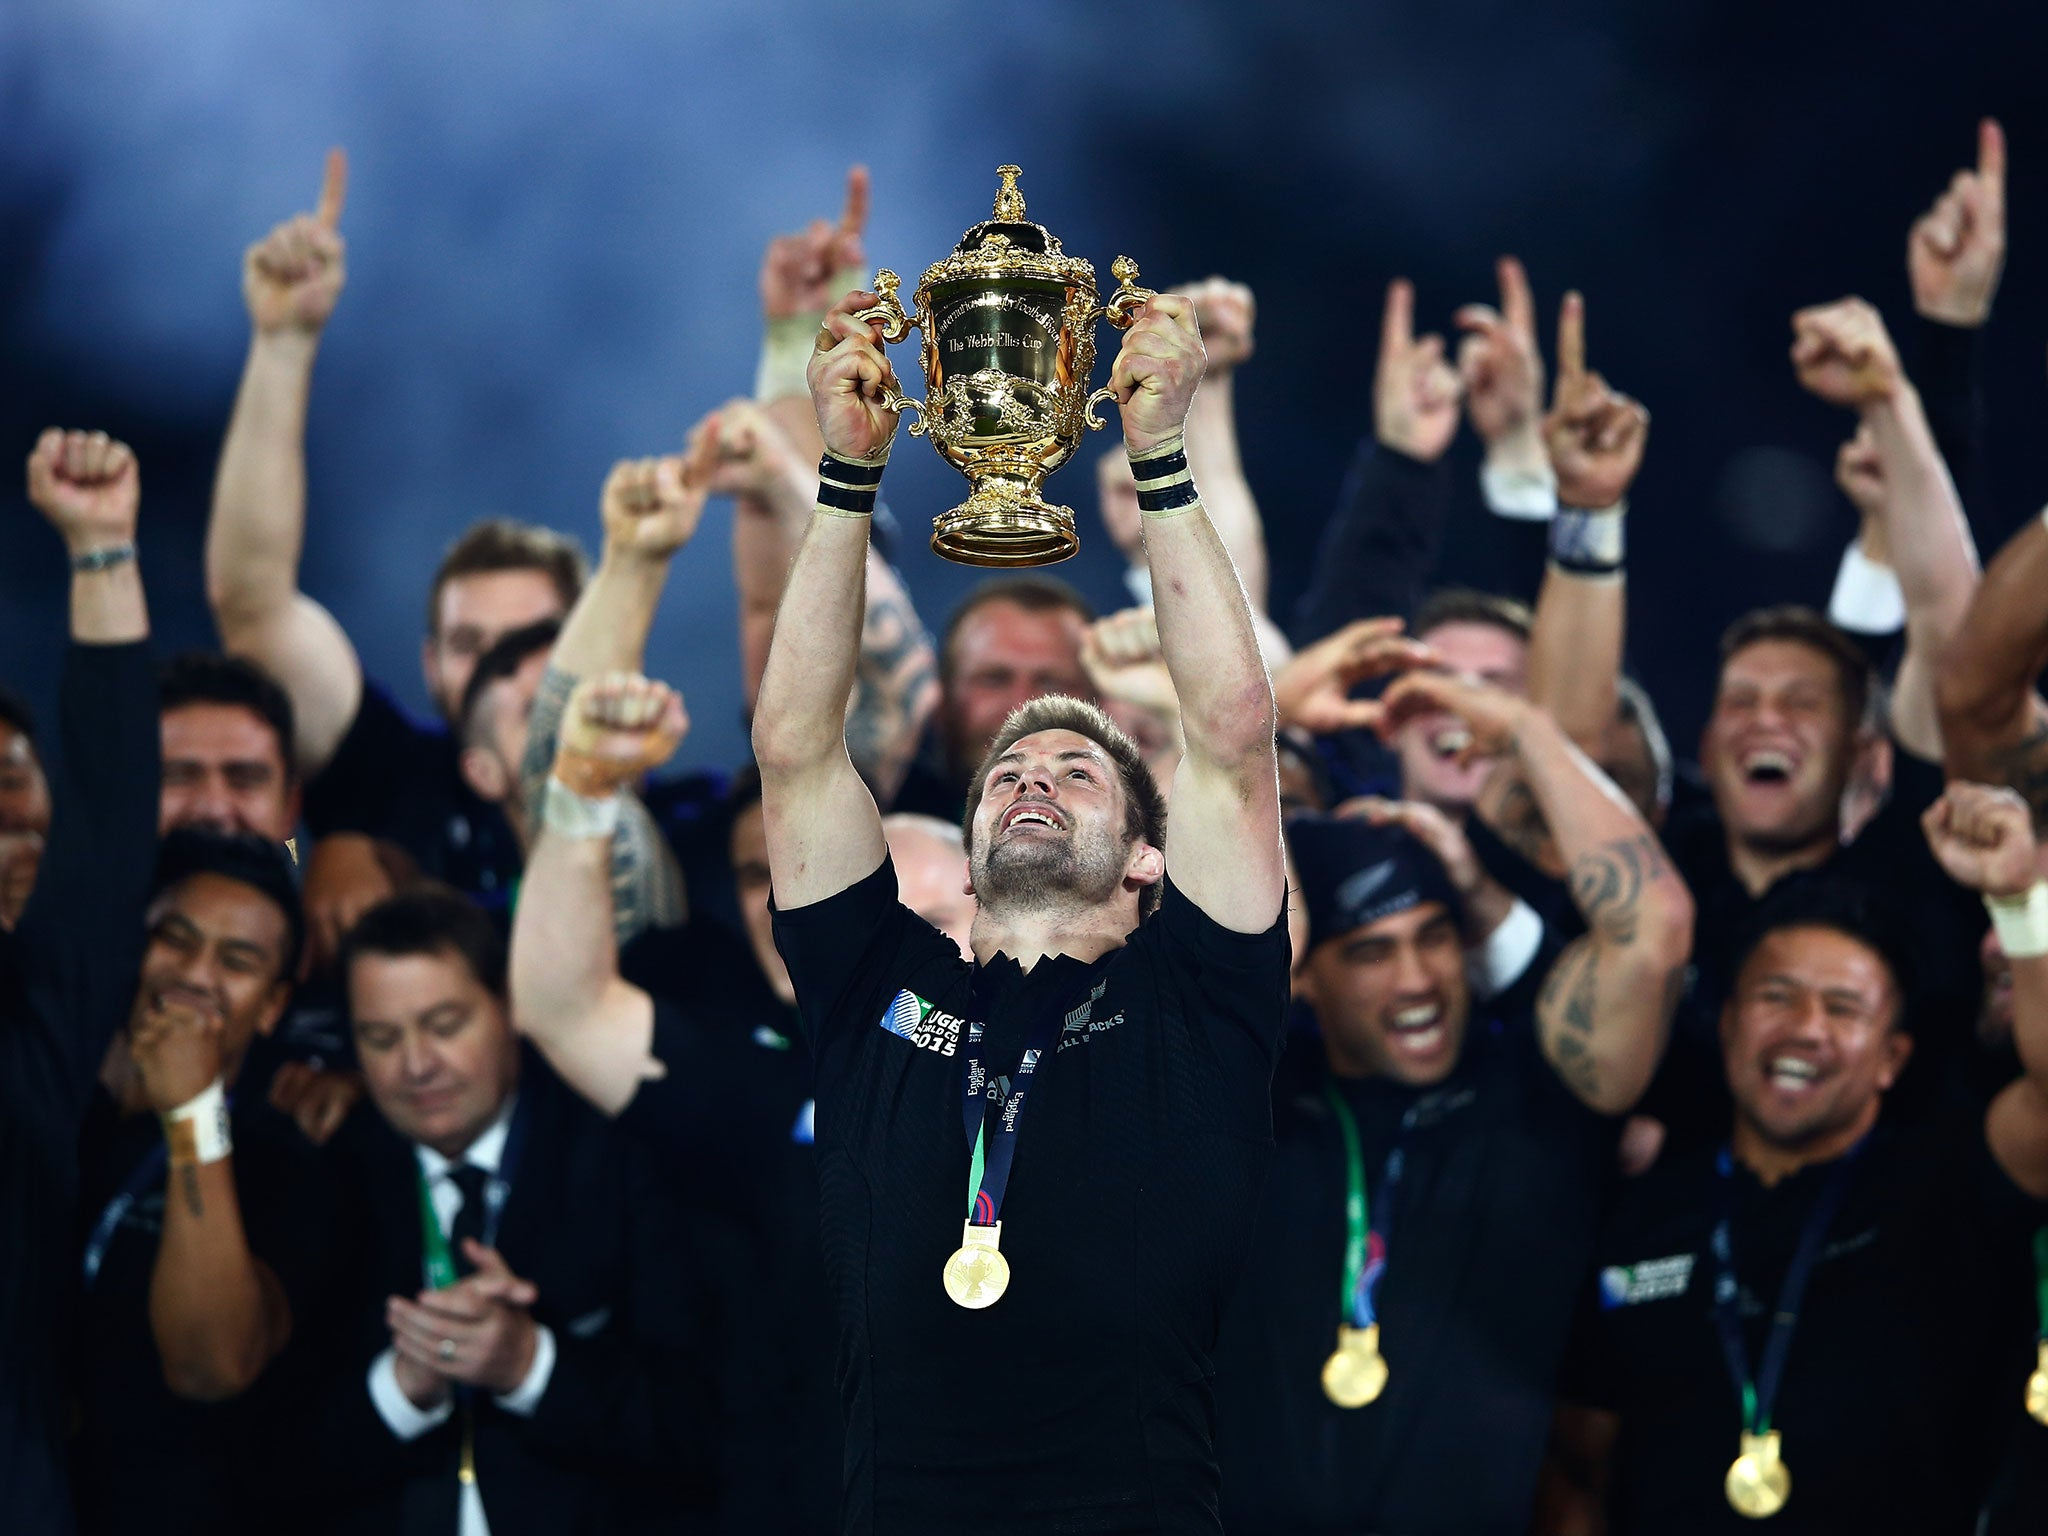 Rugby World Cup 2019 fixtures: Full match list, game guide and tournament schedule in Japan